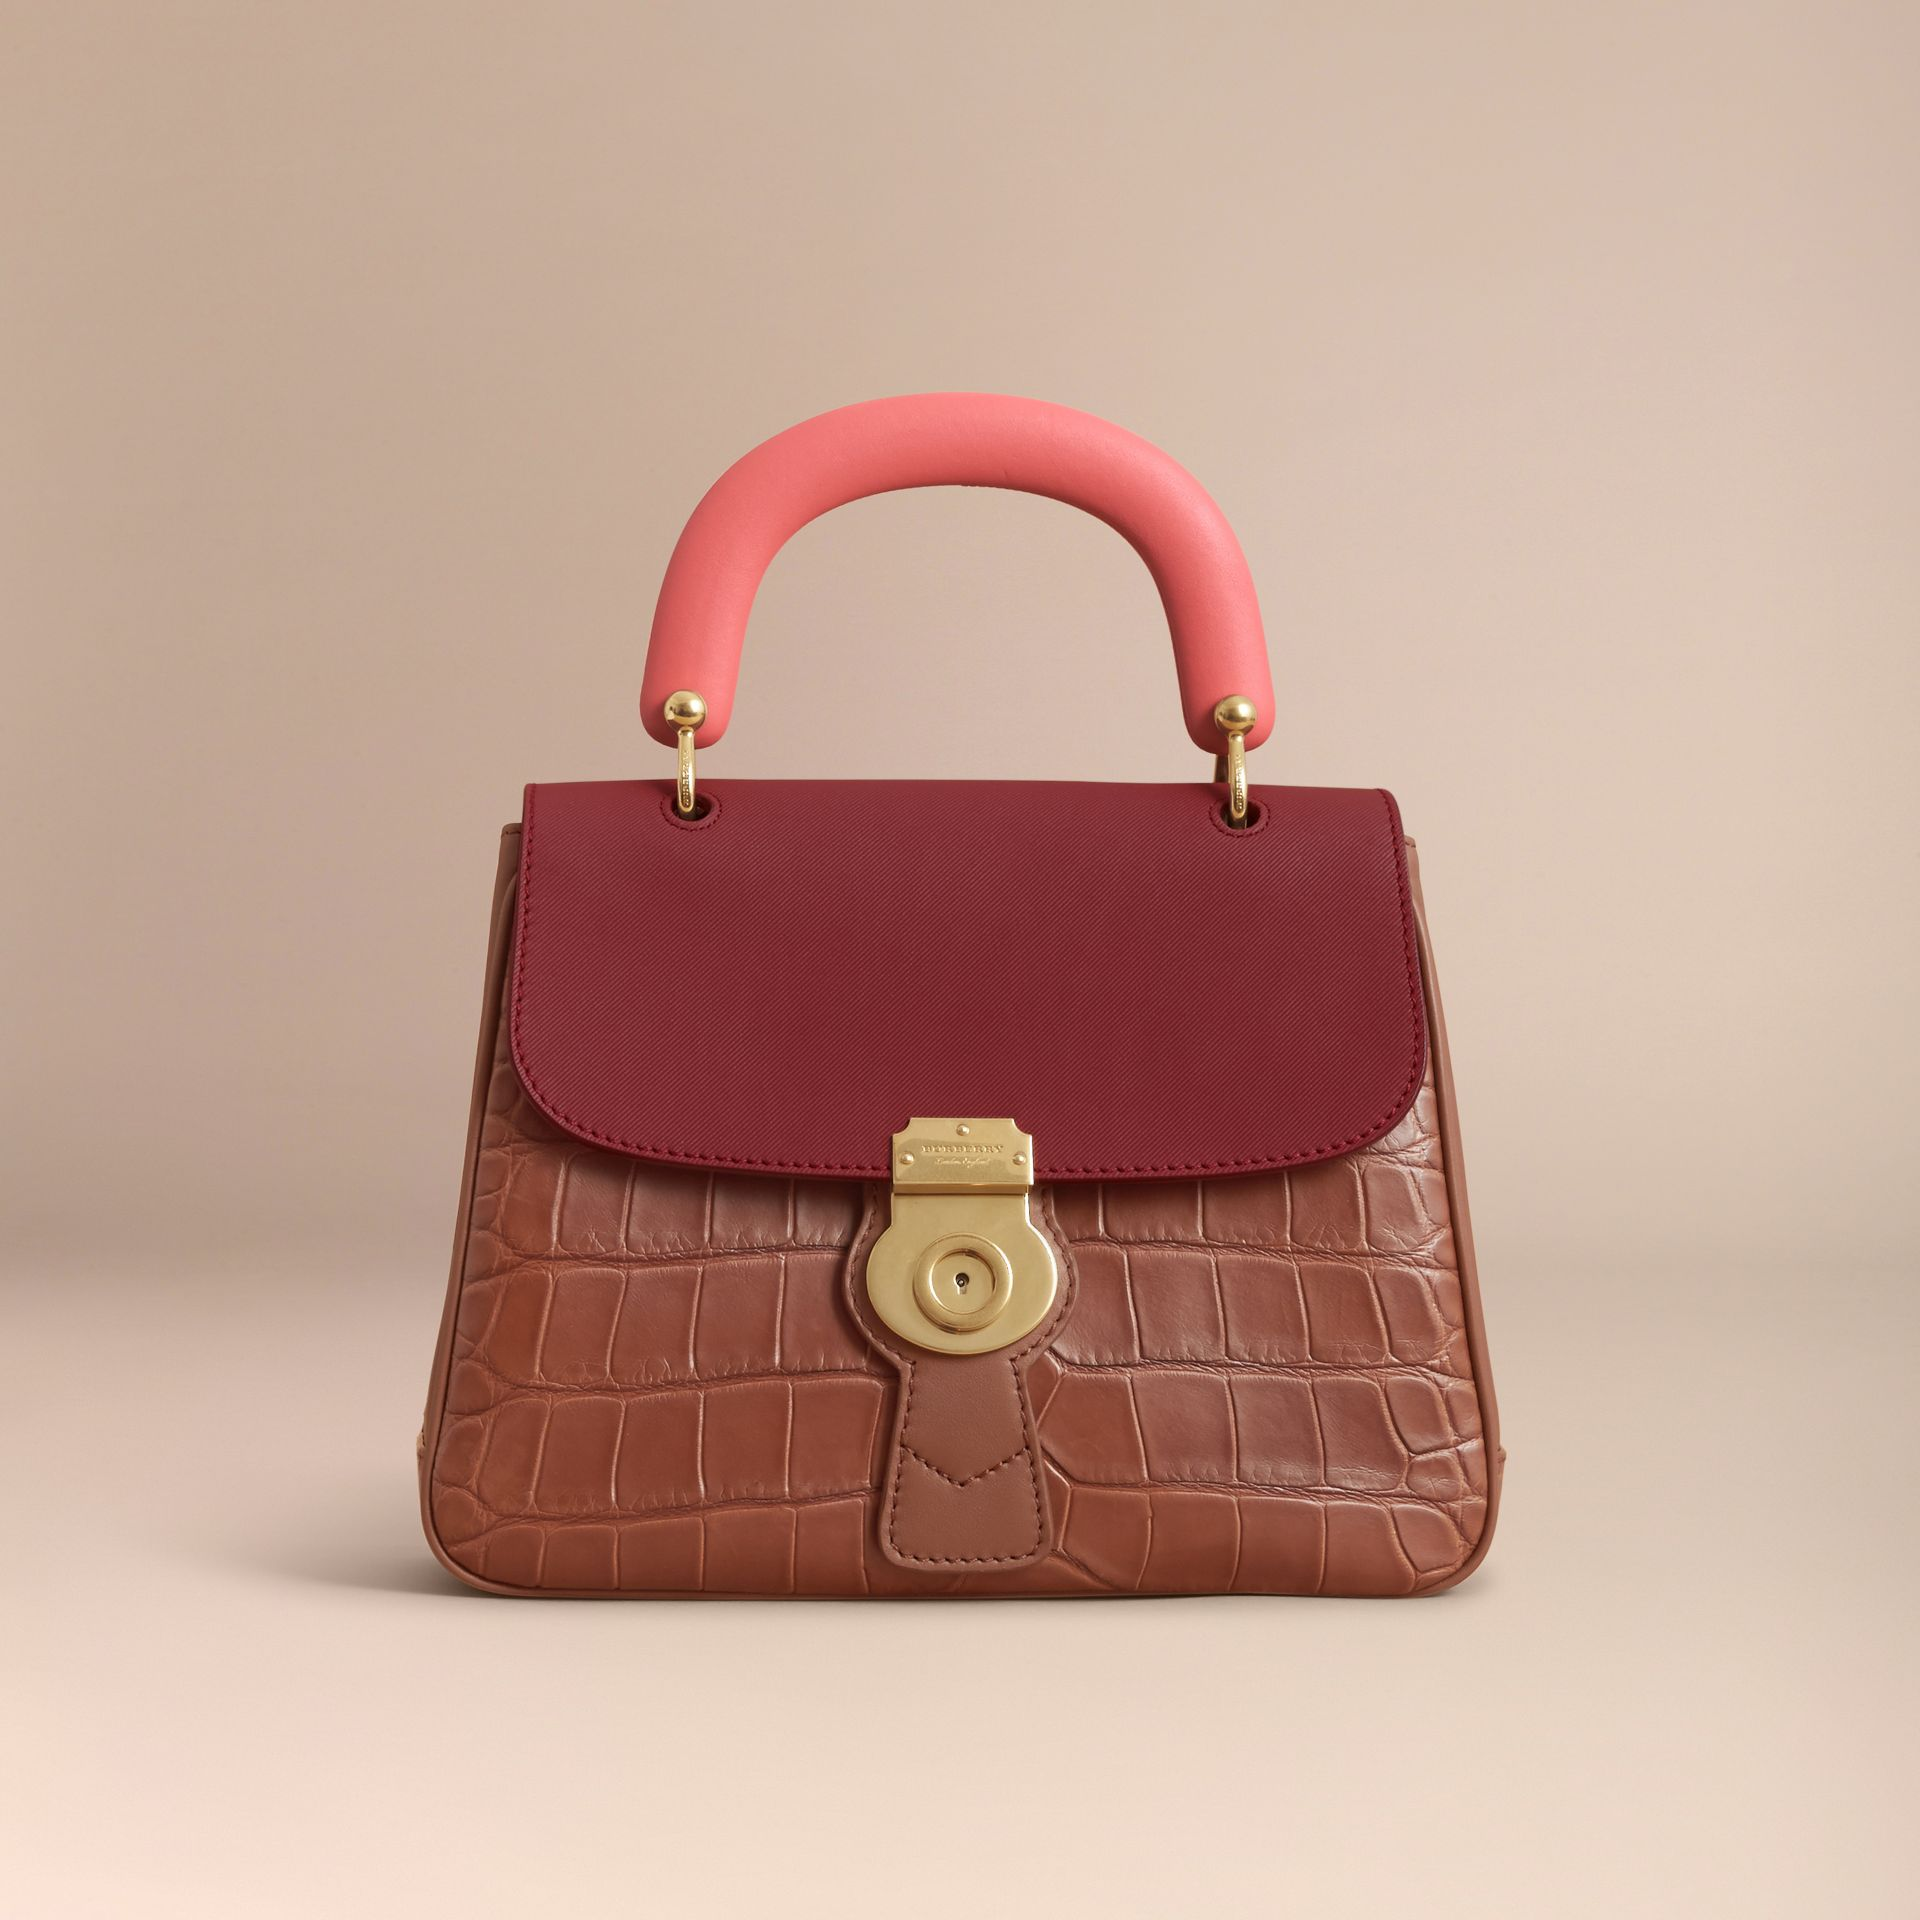 Sac à main DK88 moyen en alligator (Hâle/rouge Antique) - Femme | Burberry - photo de la galerie 7